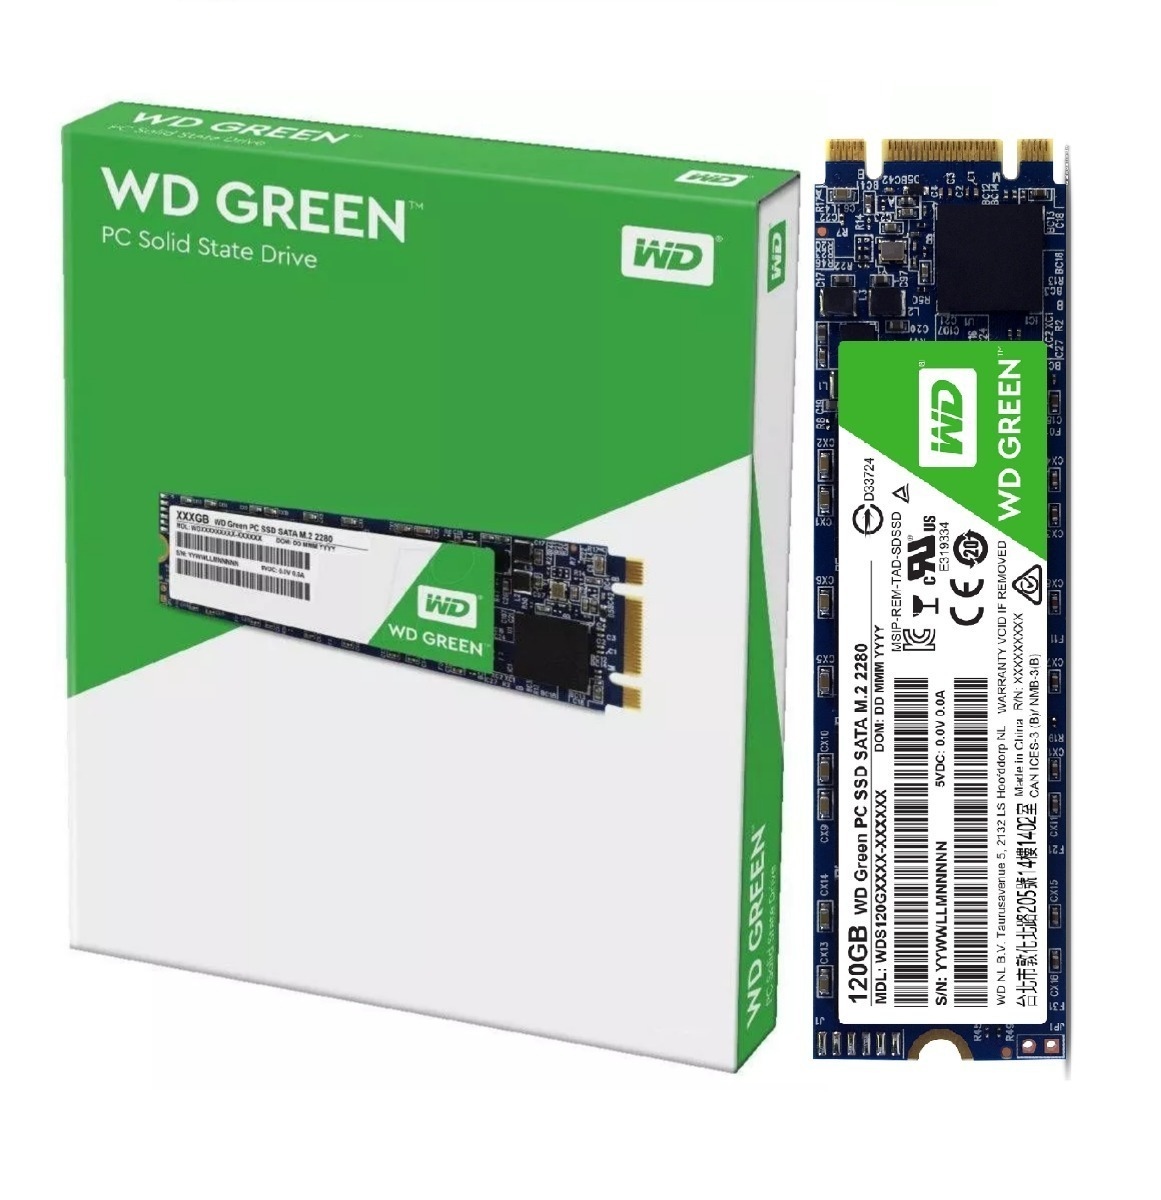 SSD M.2 120GB WESTERN DIGITAL GREEN 545MB/S 2280